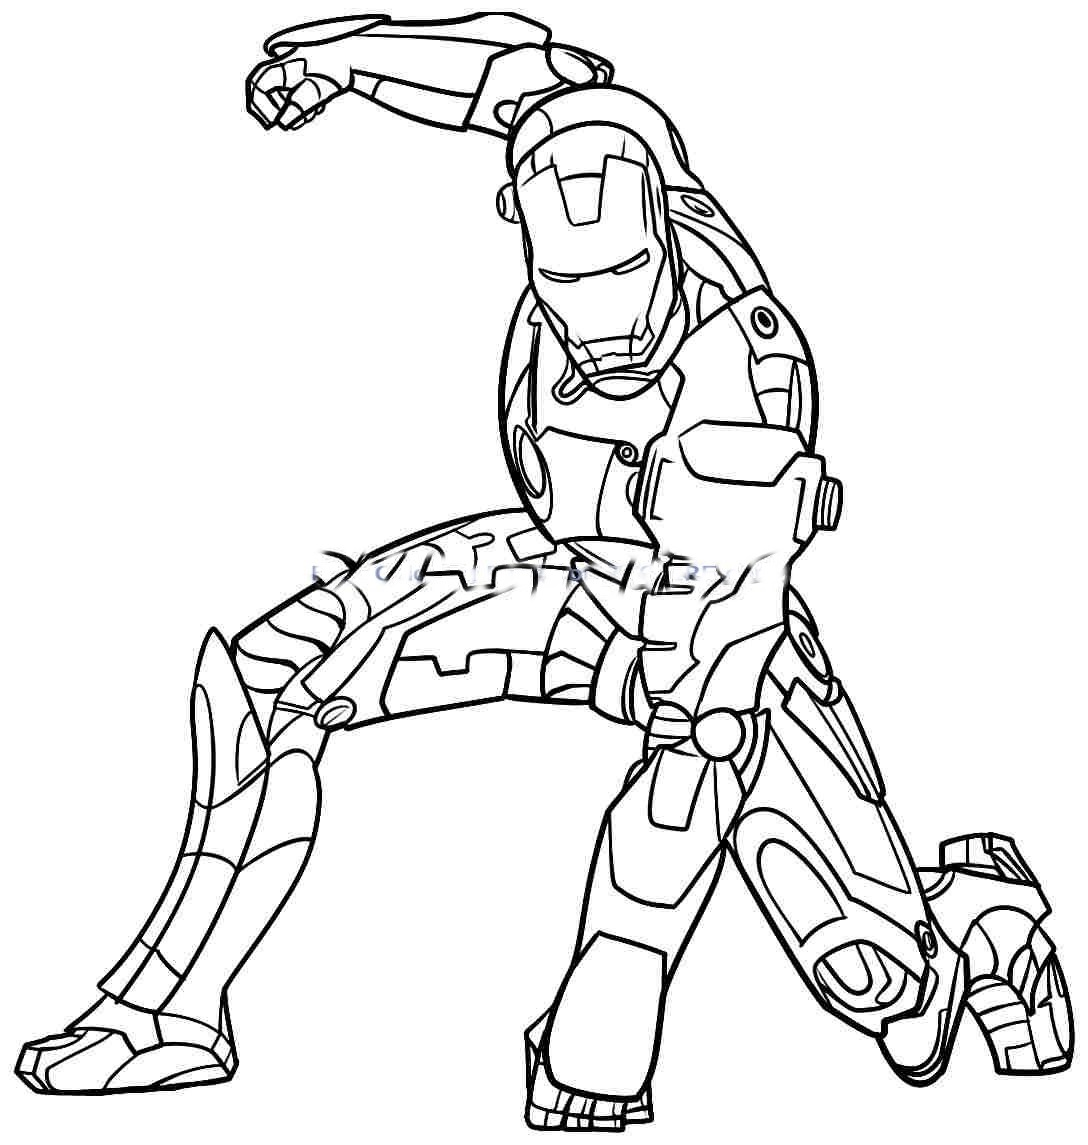 super hero coloring sheet superhero coloring pages to download and print for free coloring sheet hero super